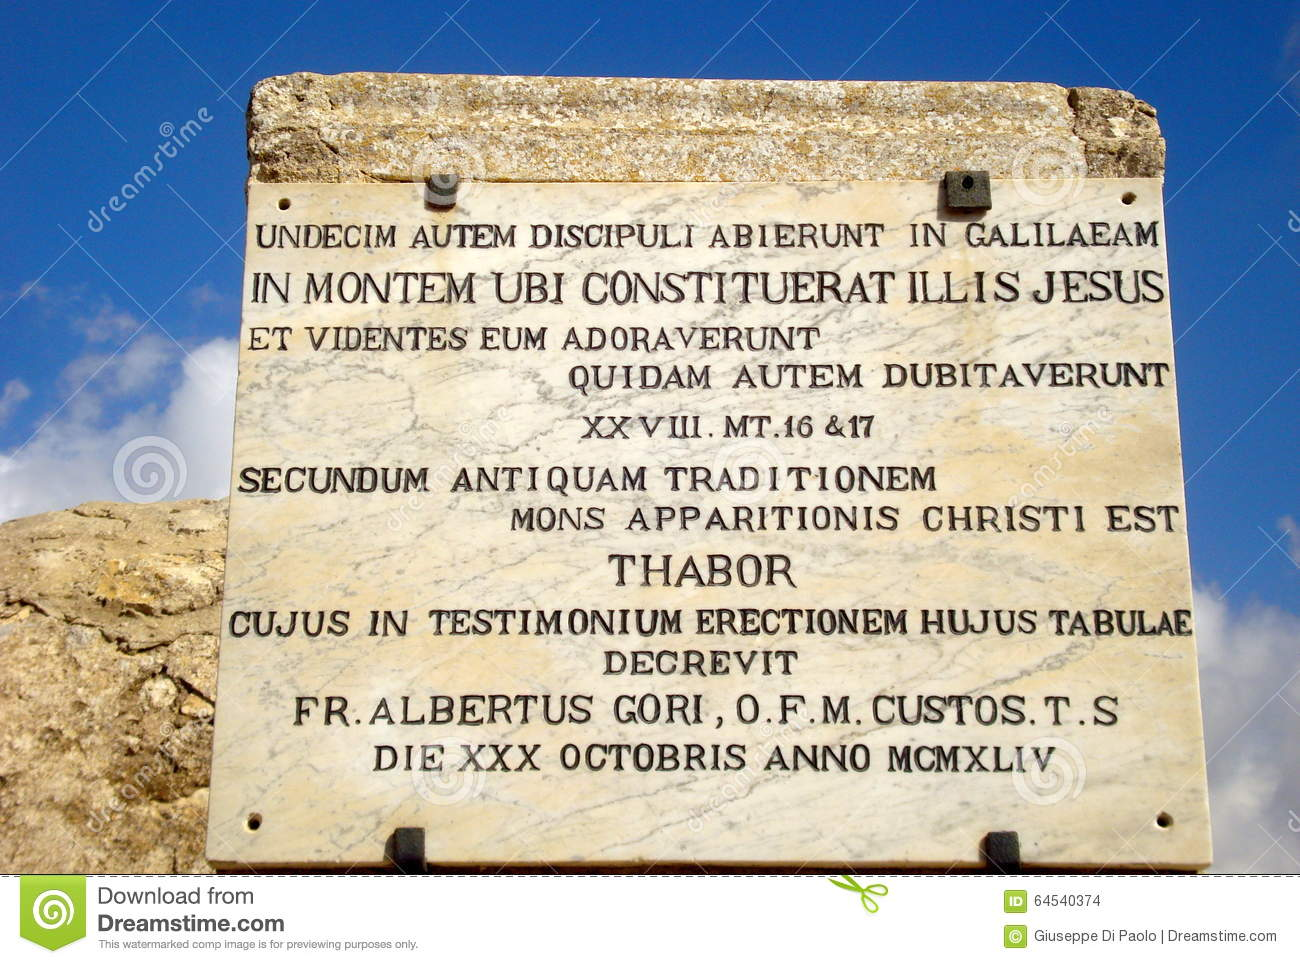 mount tabor christian dating site Mount tabor the gospel trail nazareth according to christian before being completed in 1969 over the remains of earlier structures dating to the.